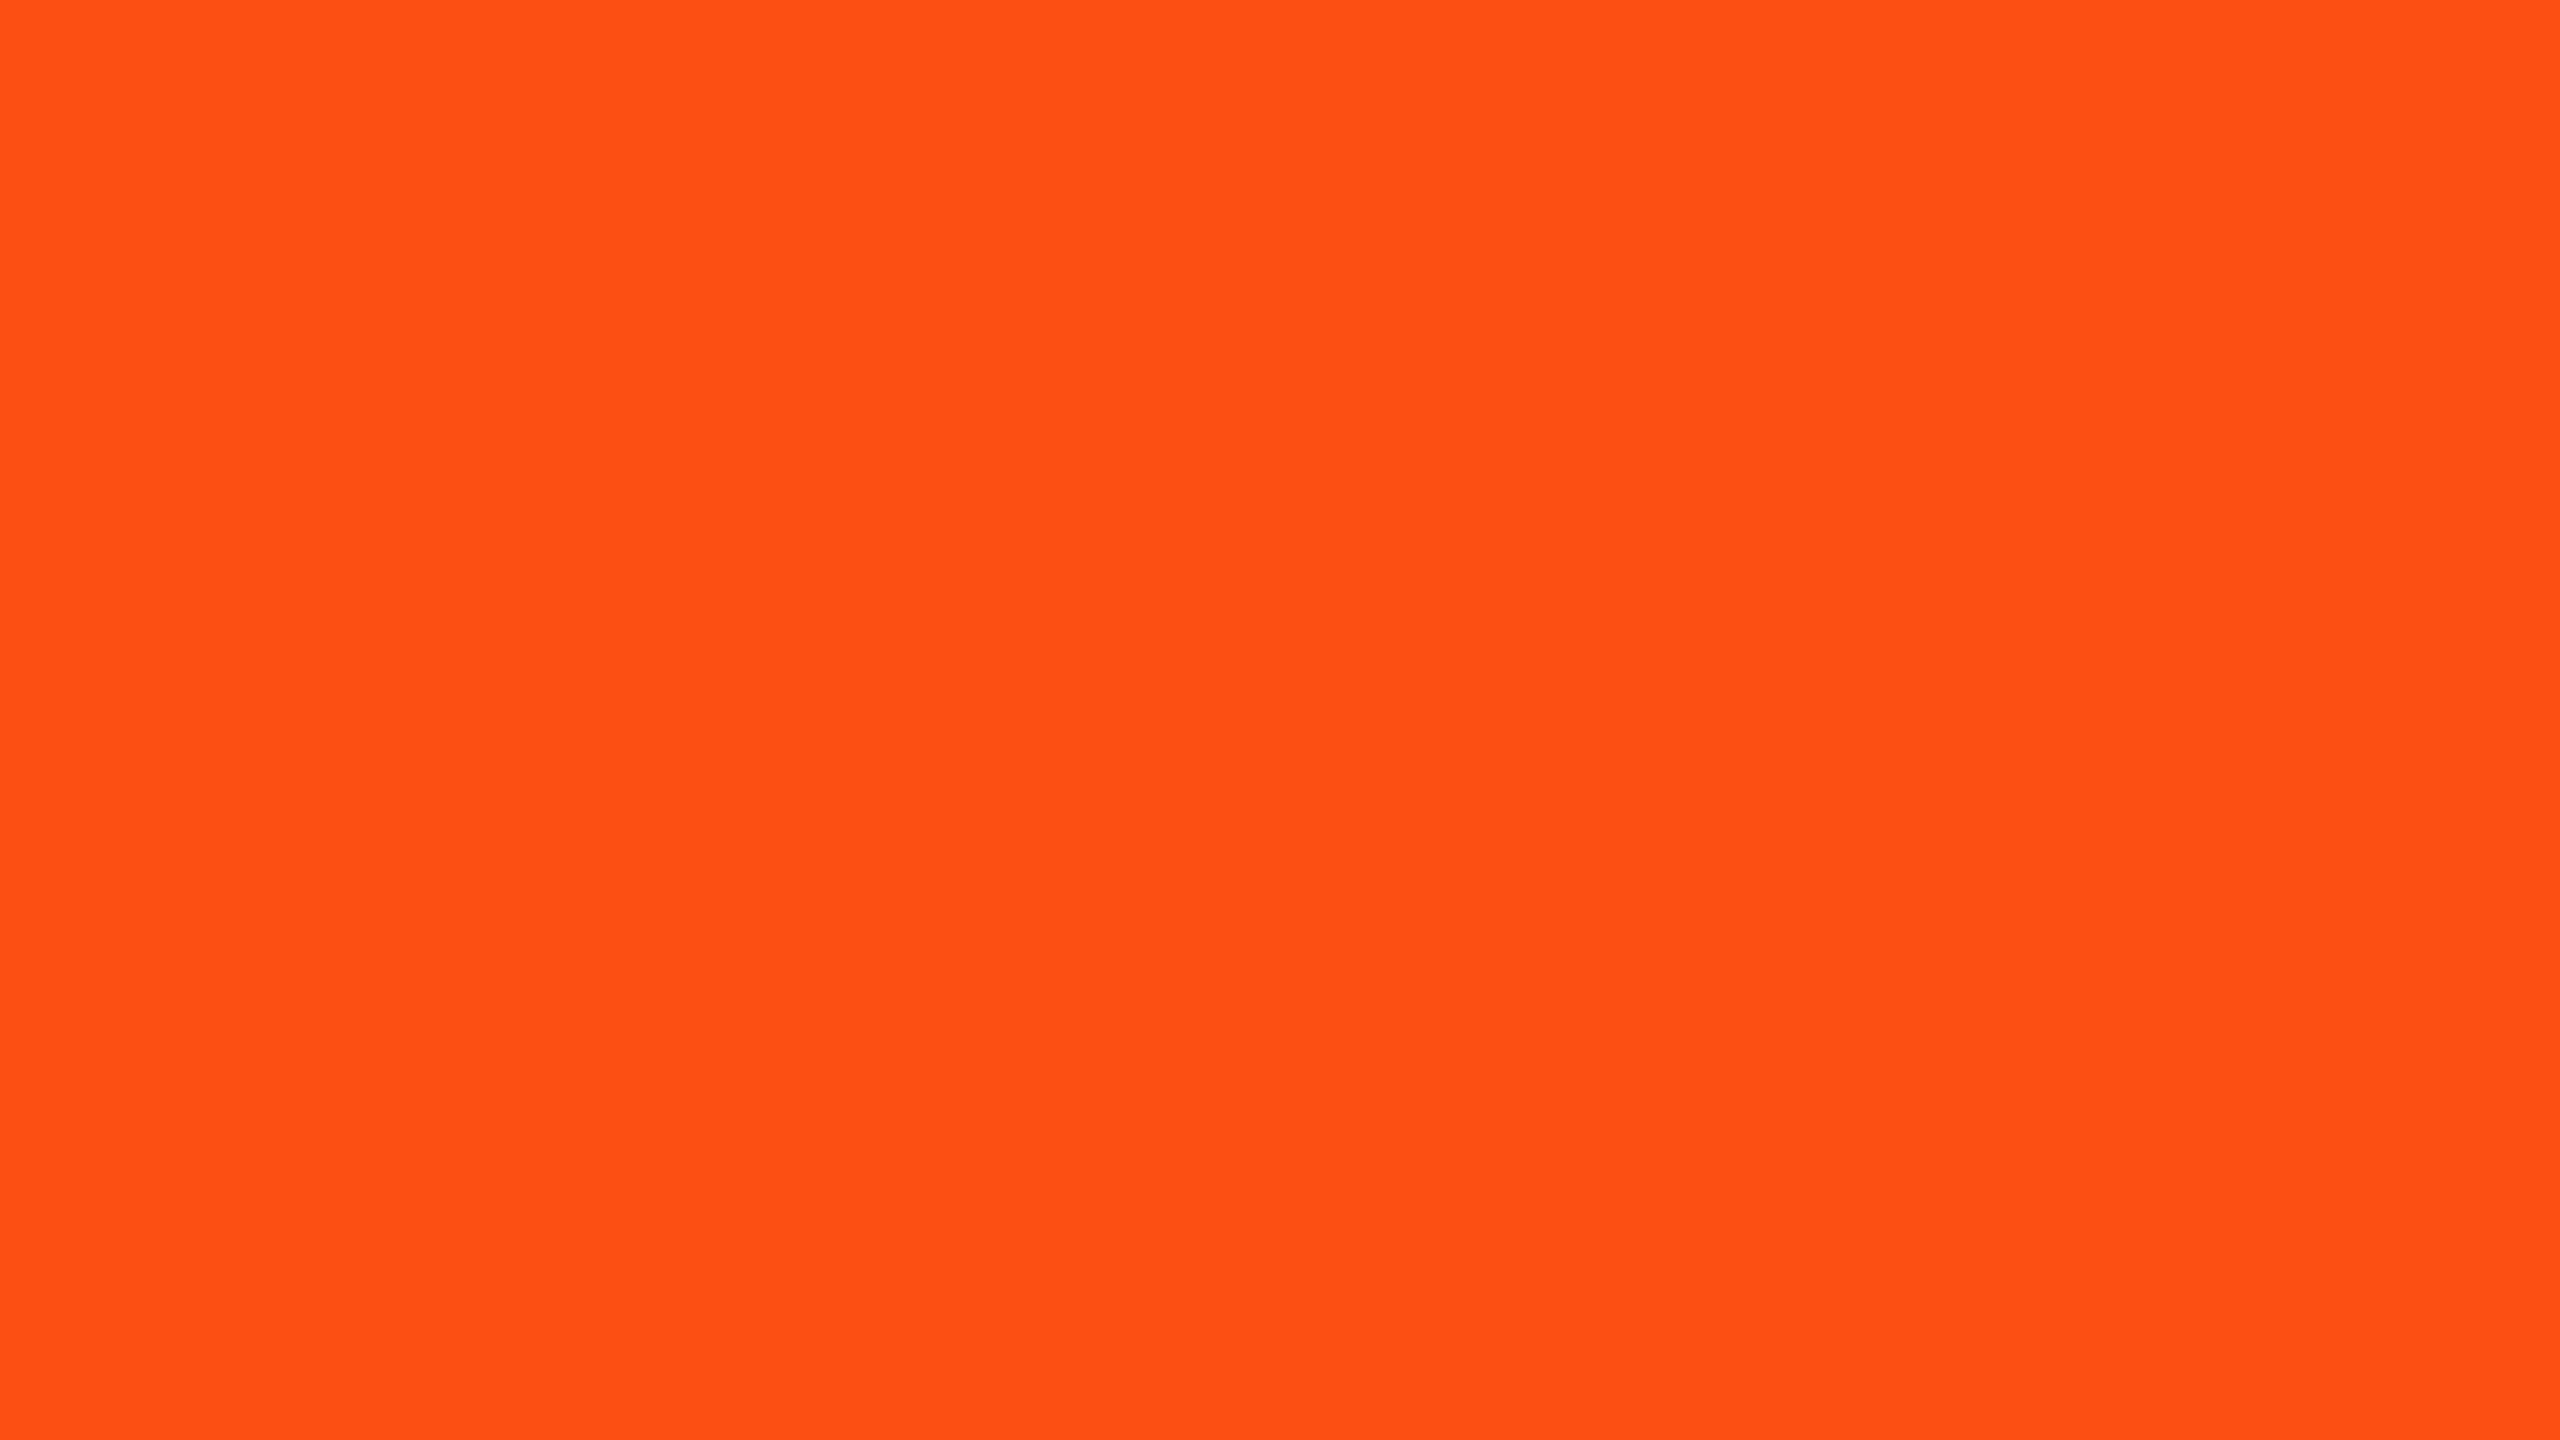 2560x1440 Solid Orange Wallpaper 47197